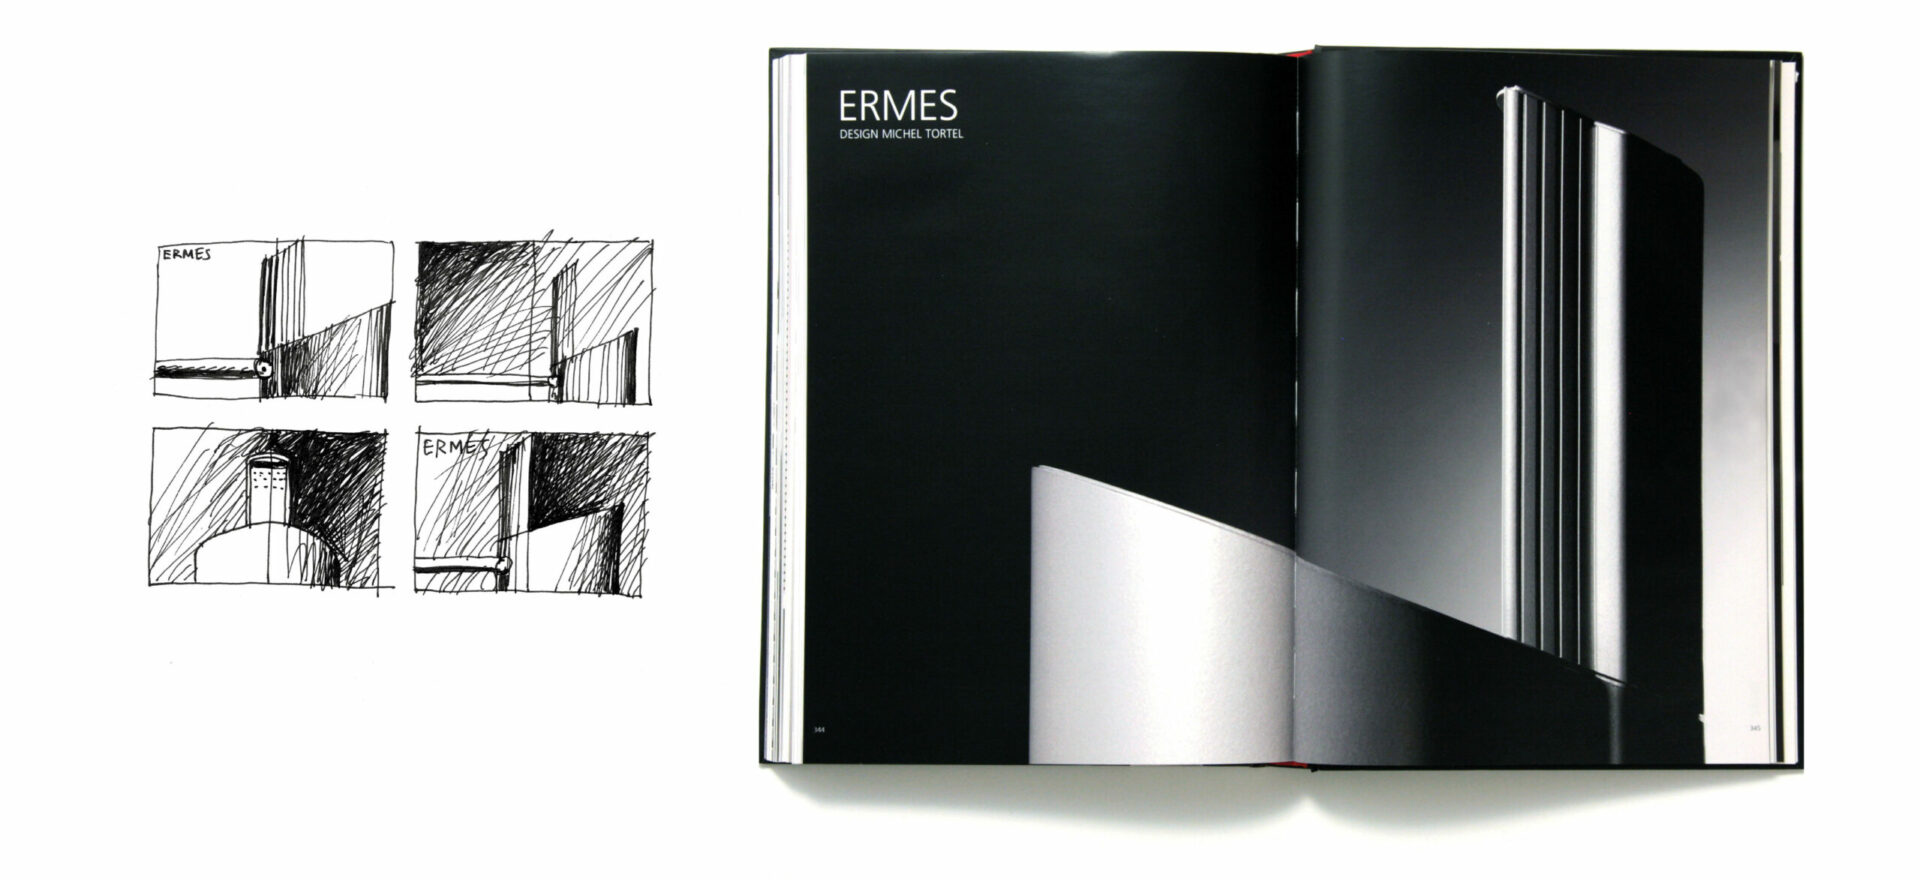 Greyscale Technical Brochure of Ermes model for Artemide Architectural, light design with 4 sketches in greyscale on the left and the opened brochure on the right showing model Ermes in a greyscale background.